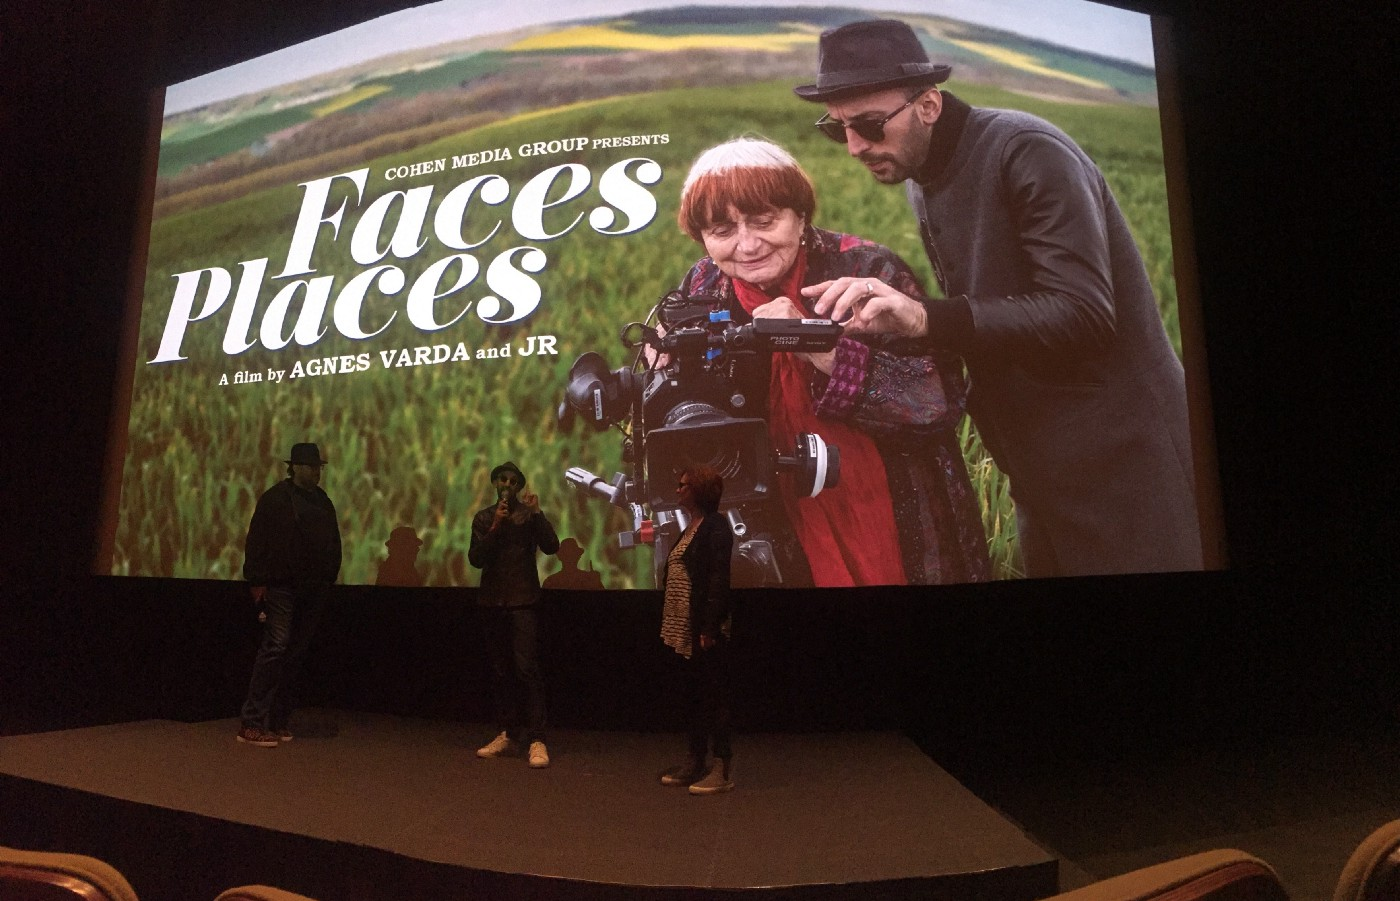 Faces Places screening at the Letterman Digital Complex in the Presidio, San Francisco, CA.